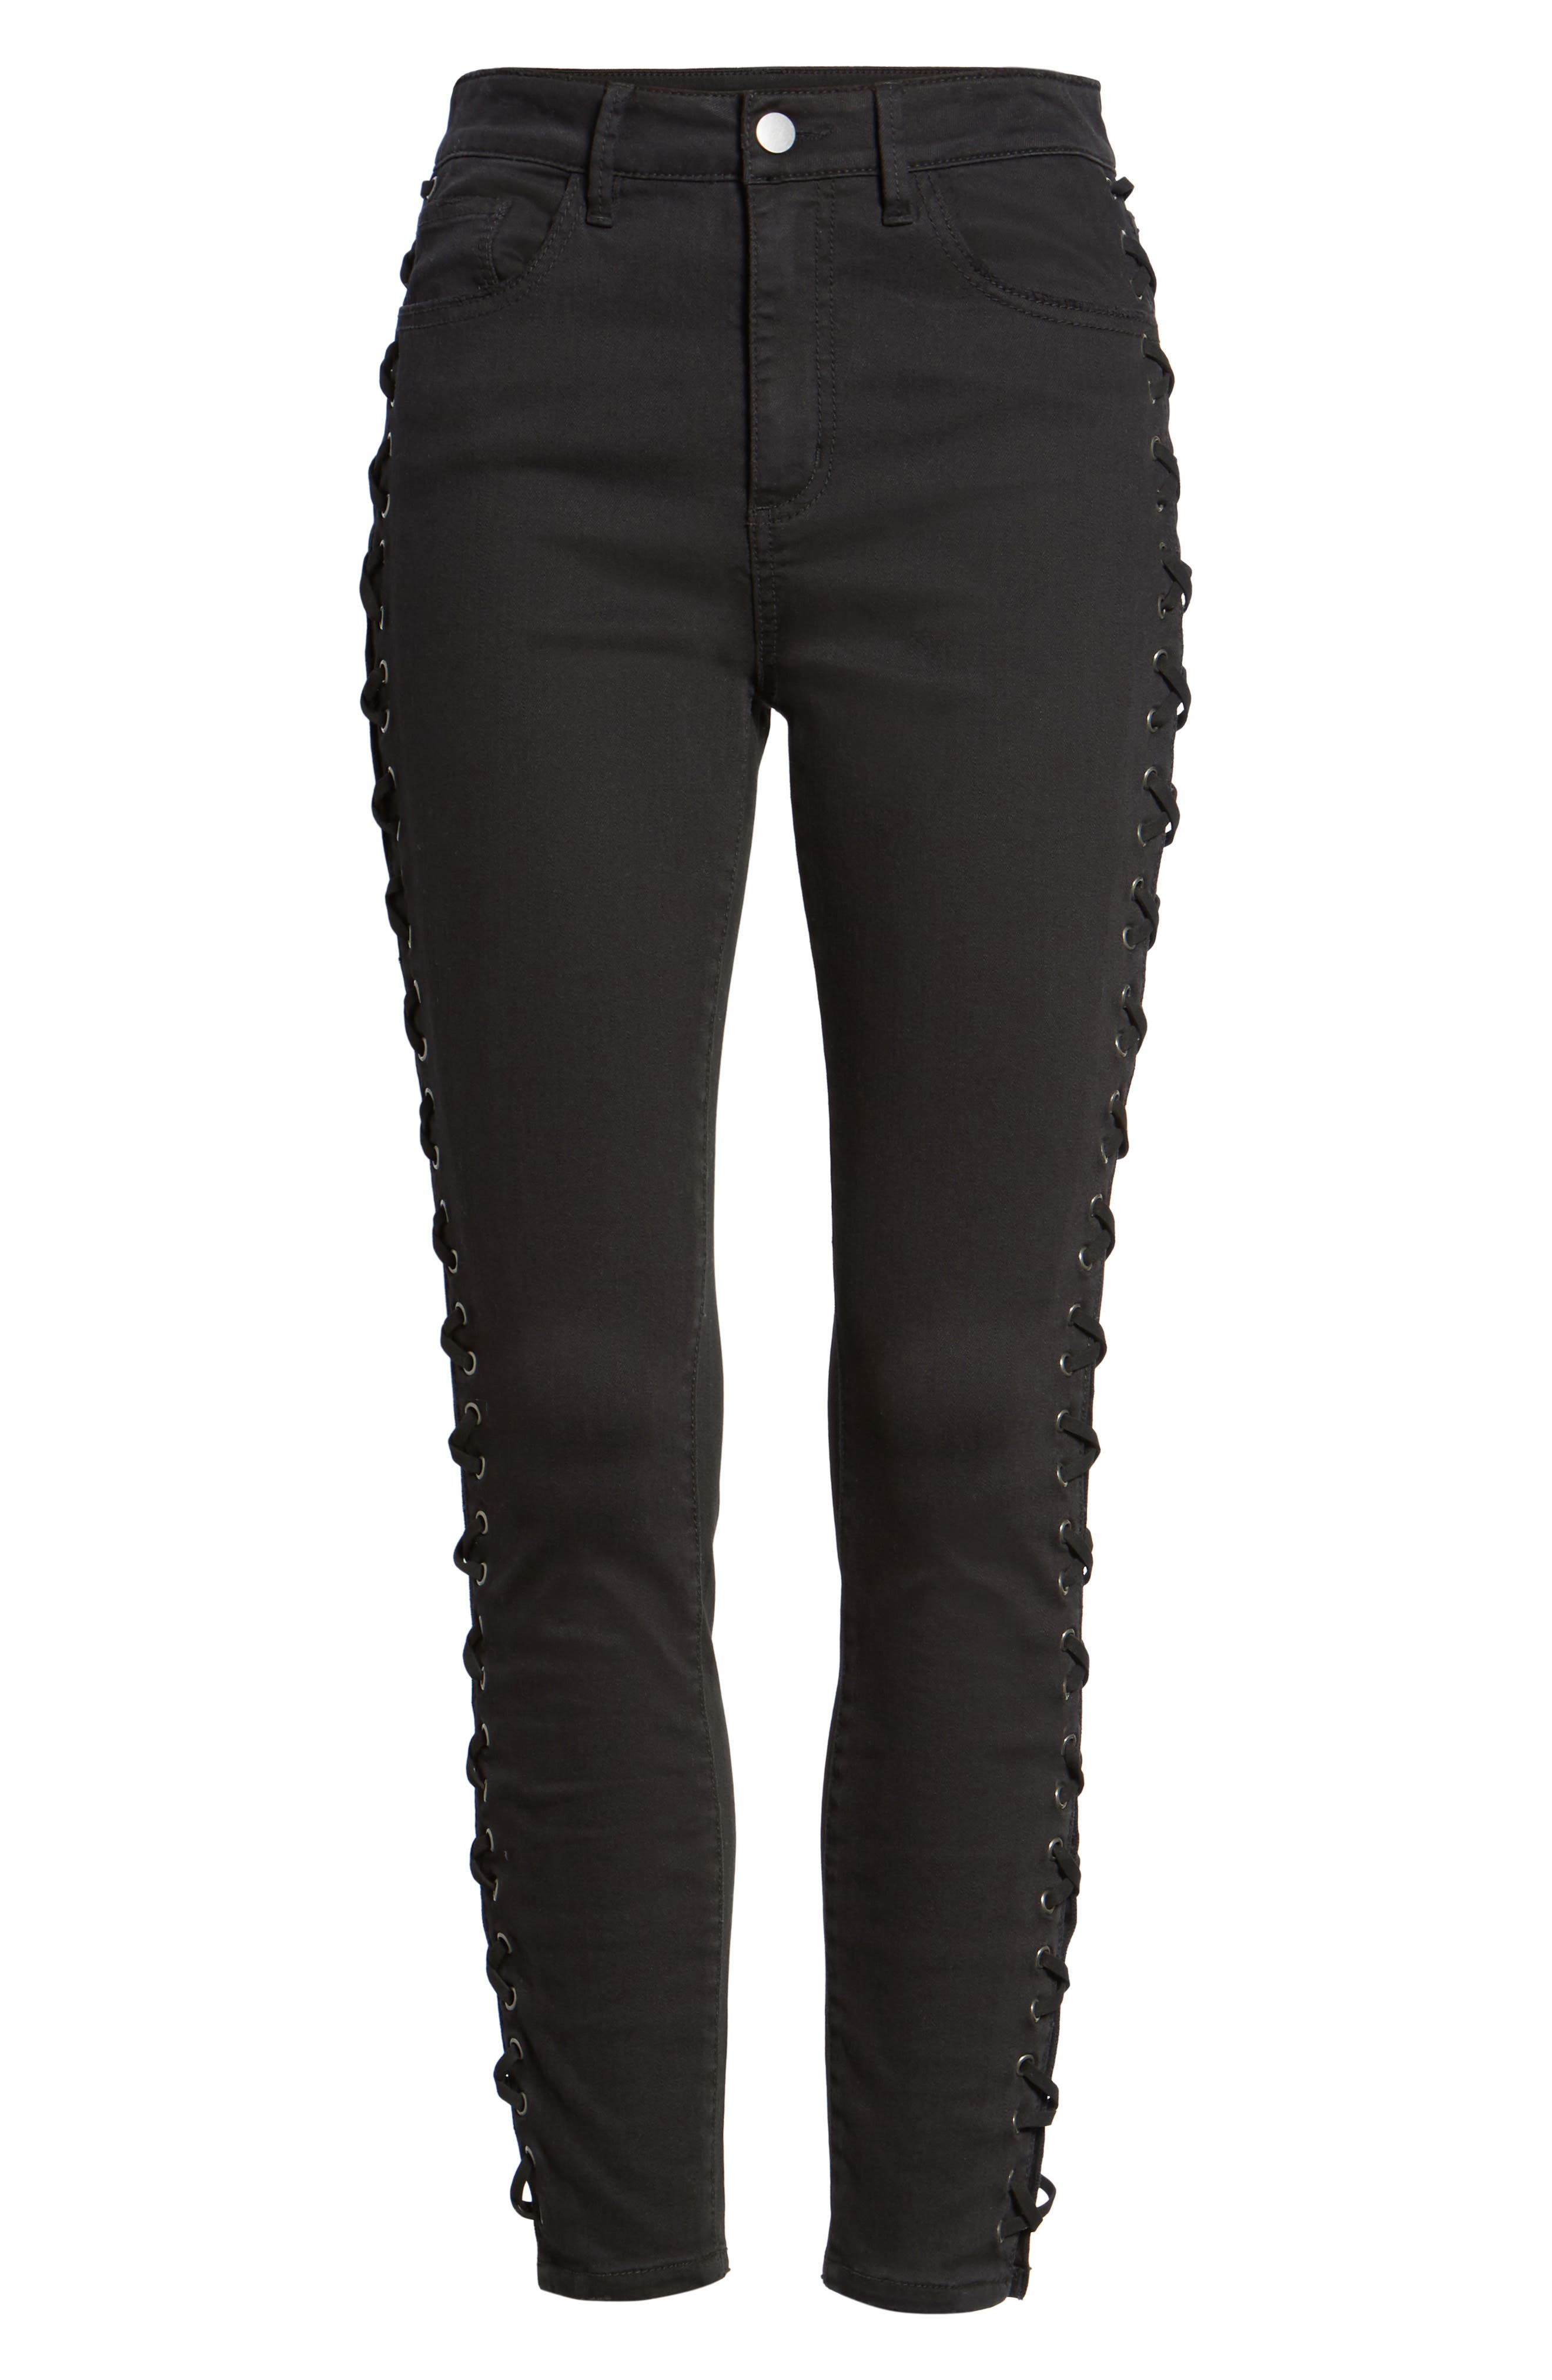 Lace-Up Skinny Jeans,                             Alternate thumbnail 6, color,                             001